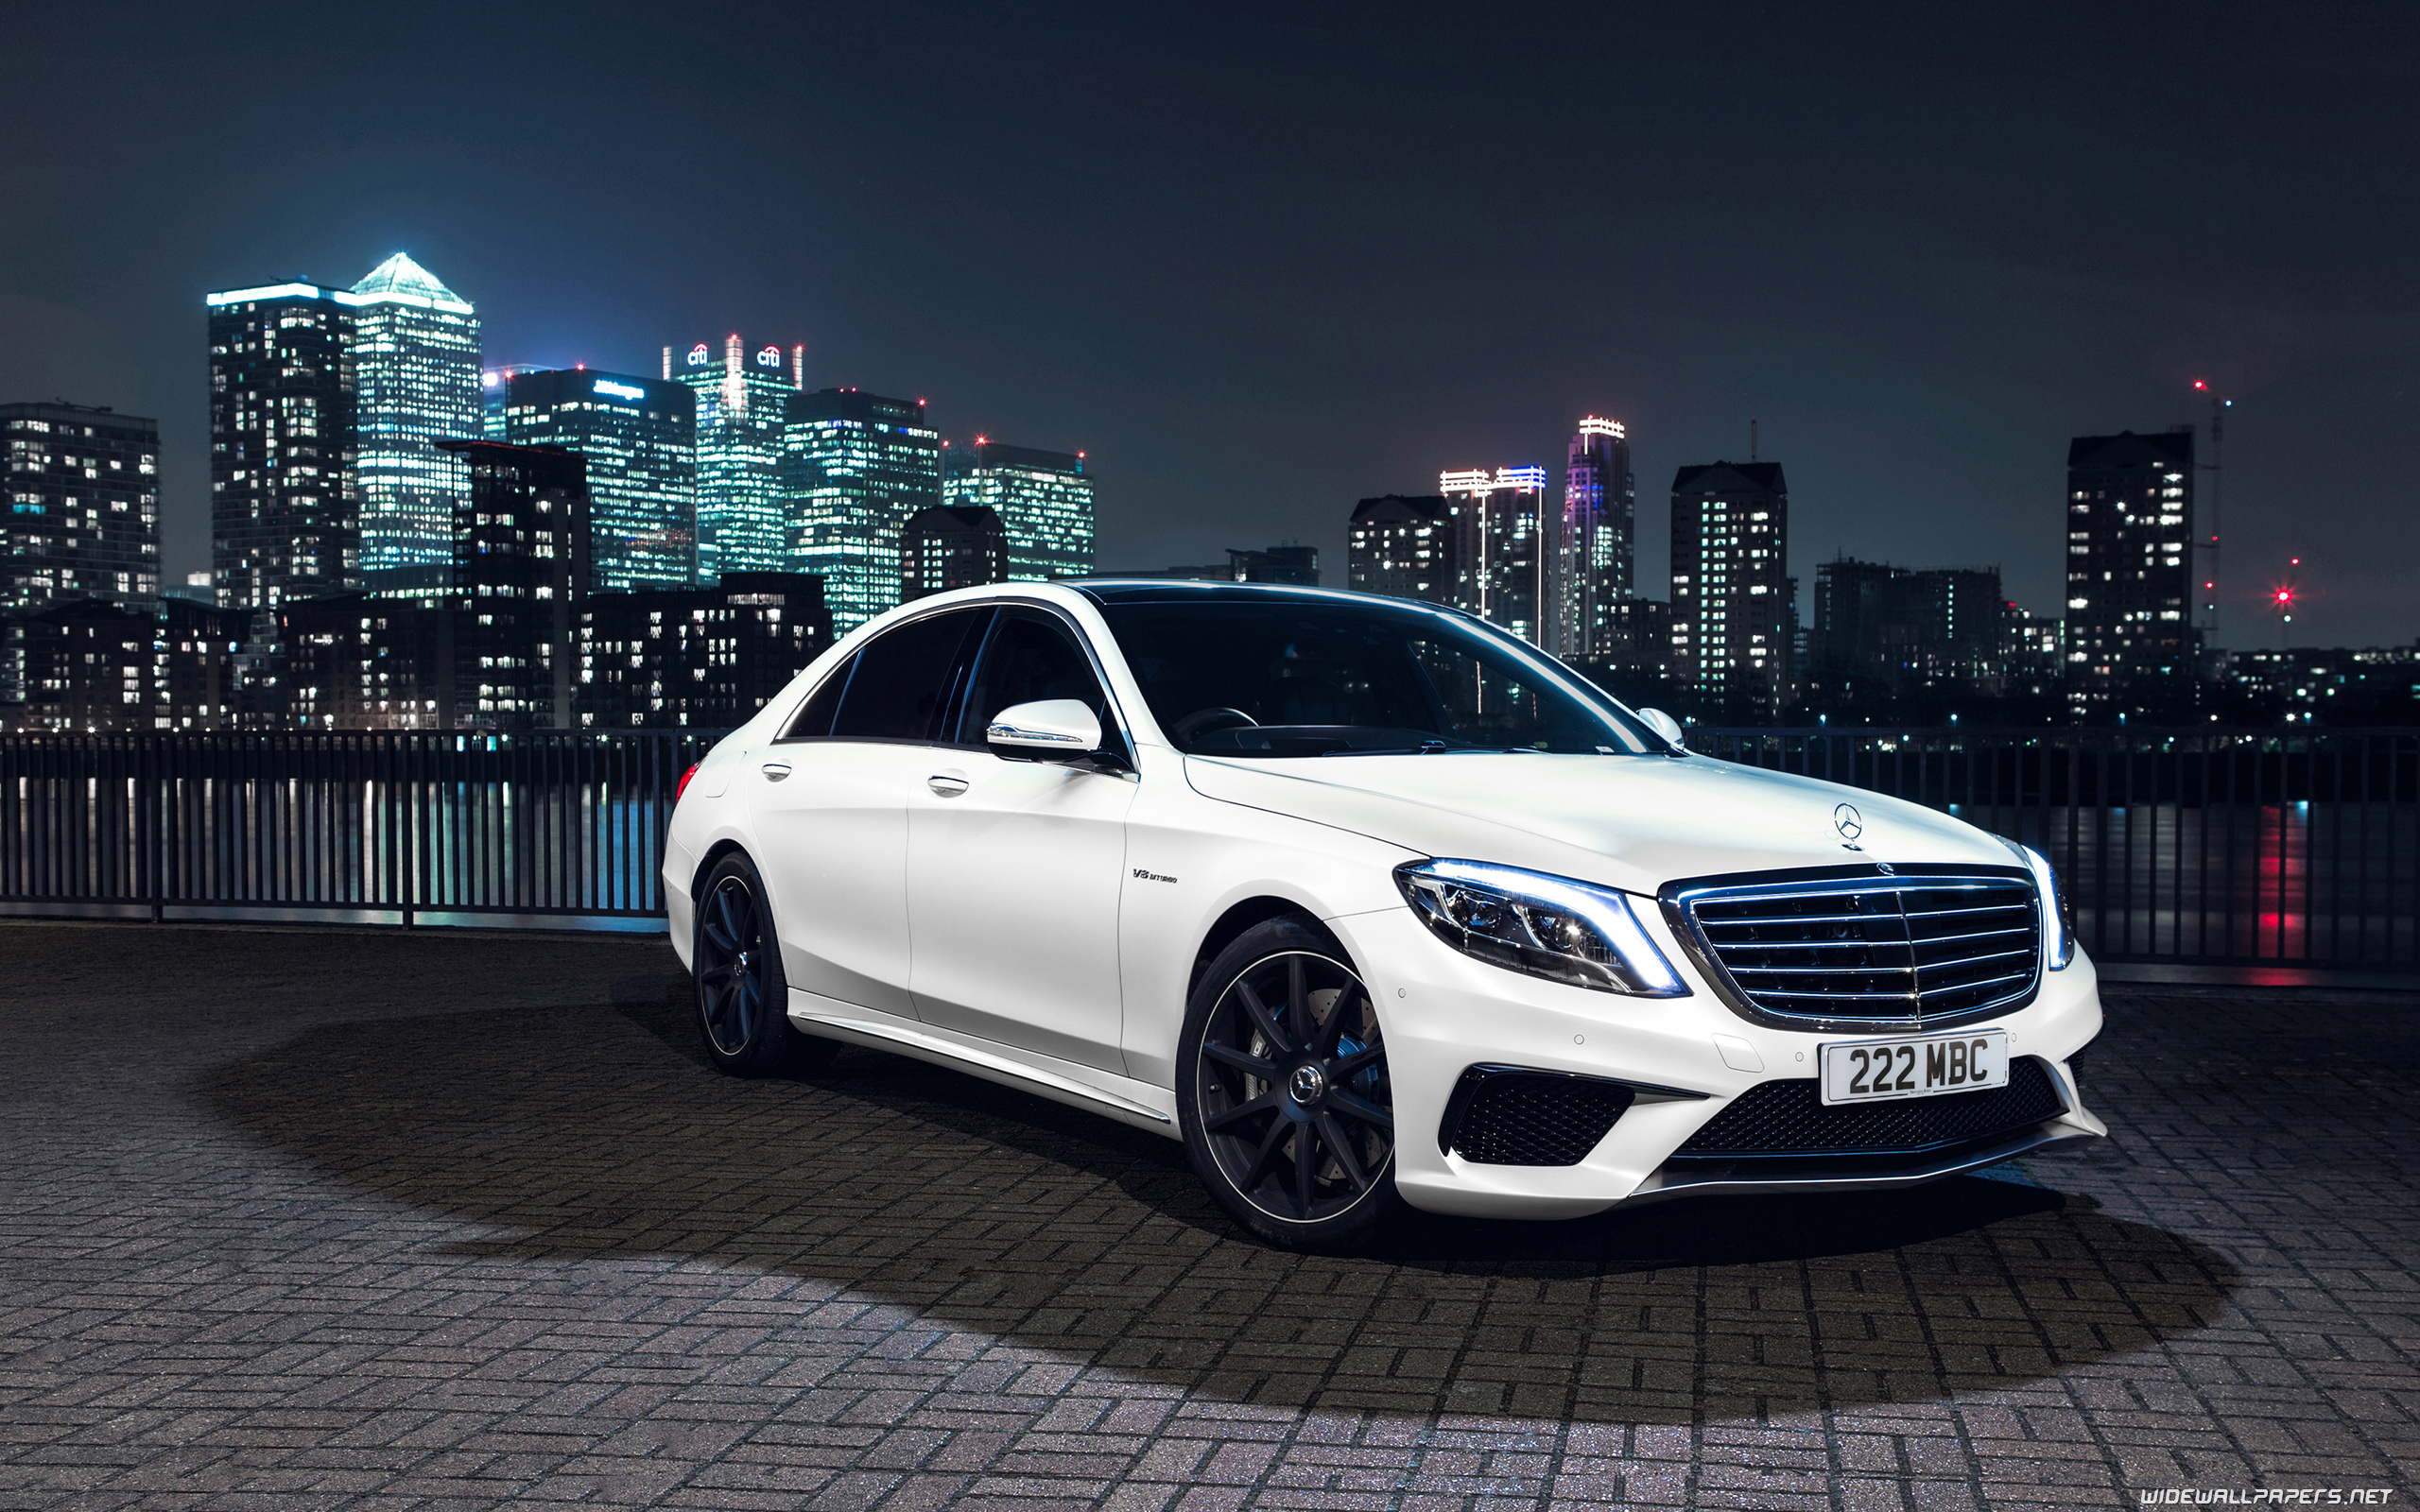 27 Classy Mercedes S Class Wallpaper To Give Your Screen